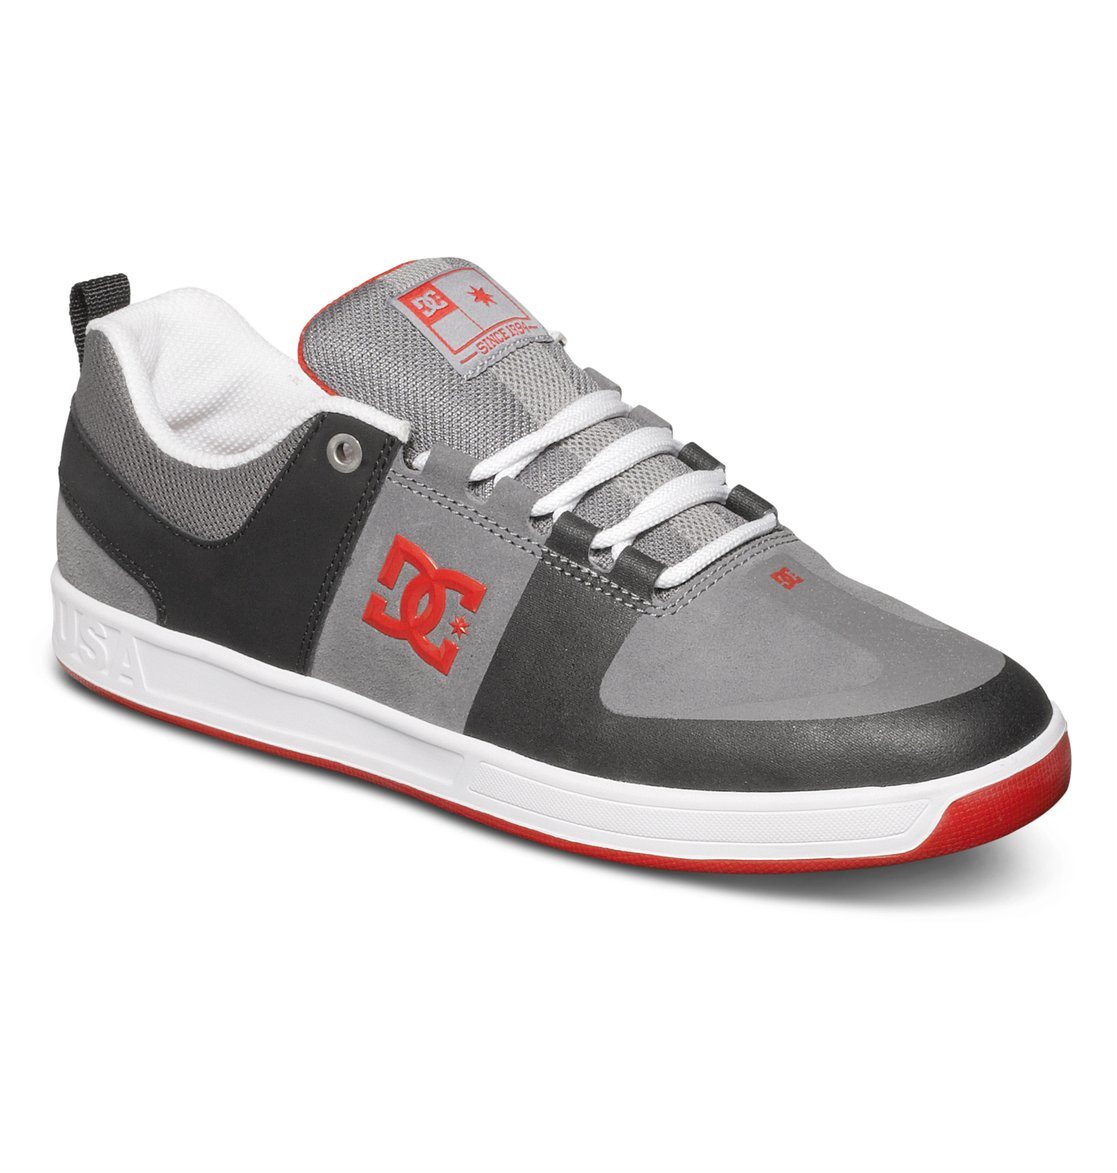 DC Shoes Lynx Lite - Low-Top Shoes - Chaussures - Homme